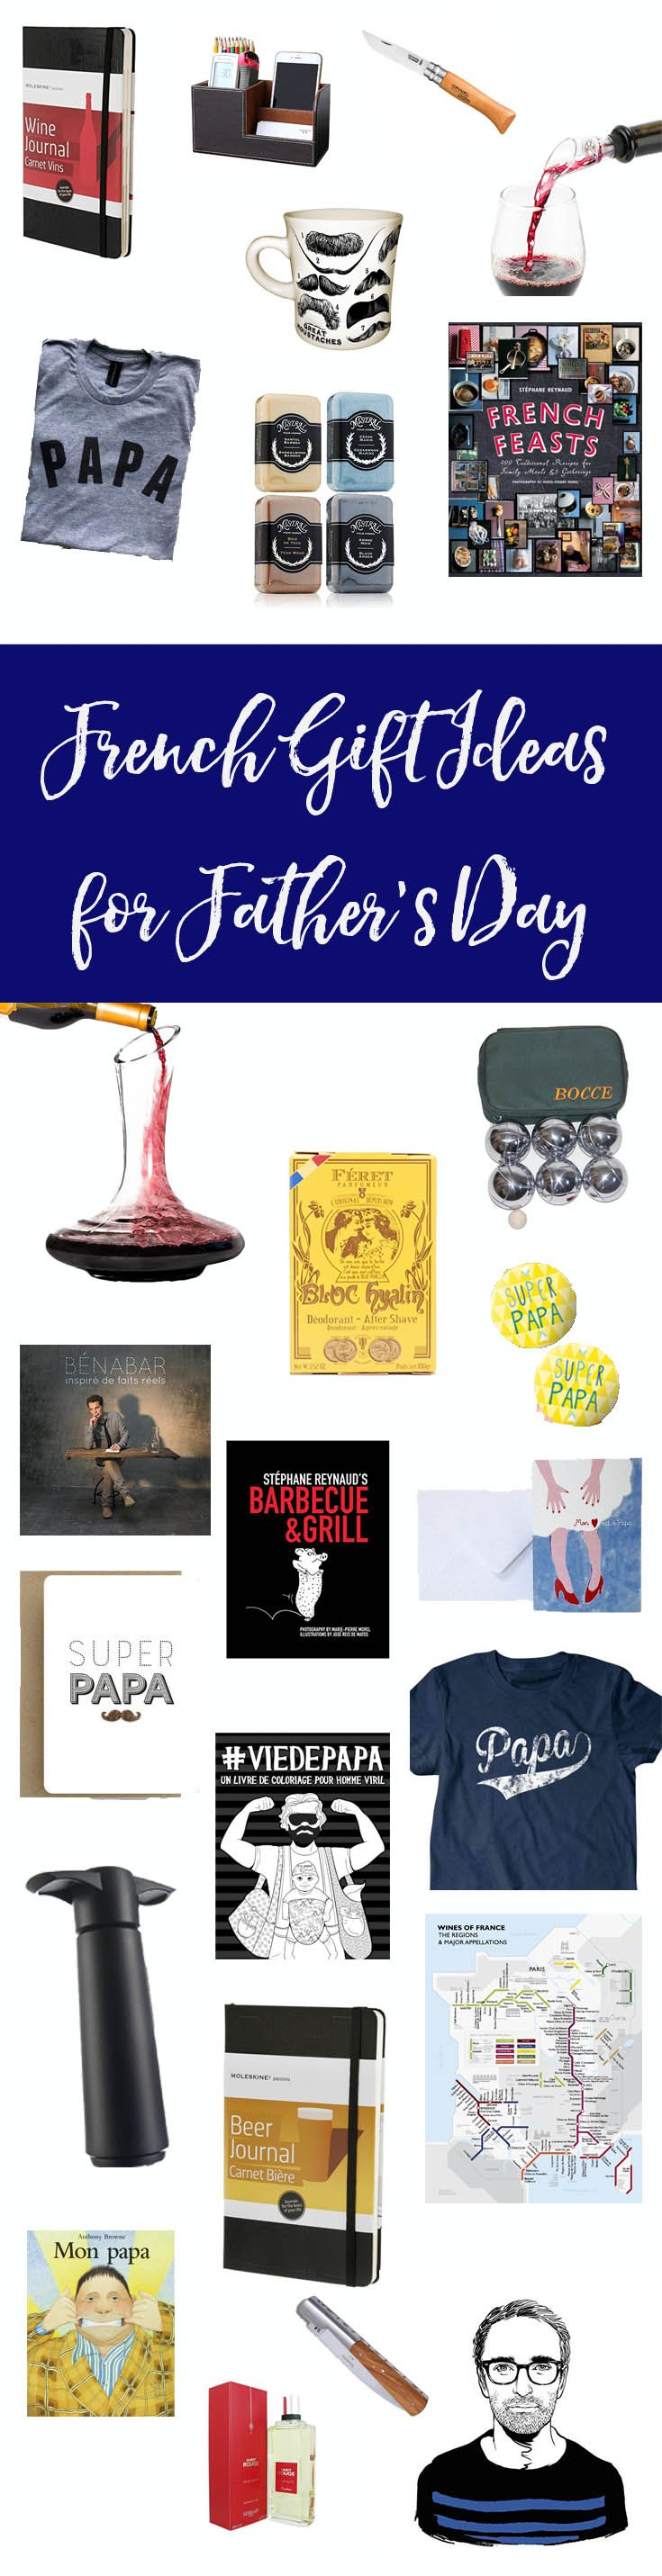 French Gift Ideas for Father's Day : Does your Papa love all things French? This Father's Day, treat him to one of my French Father's Day Gift Ideas!